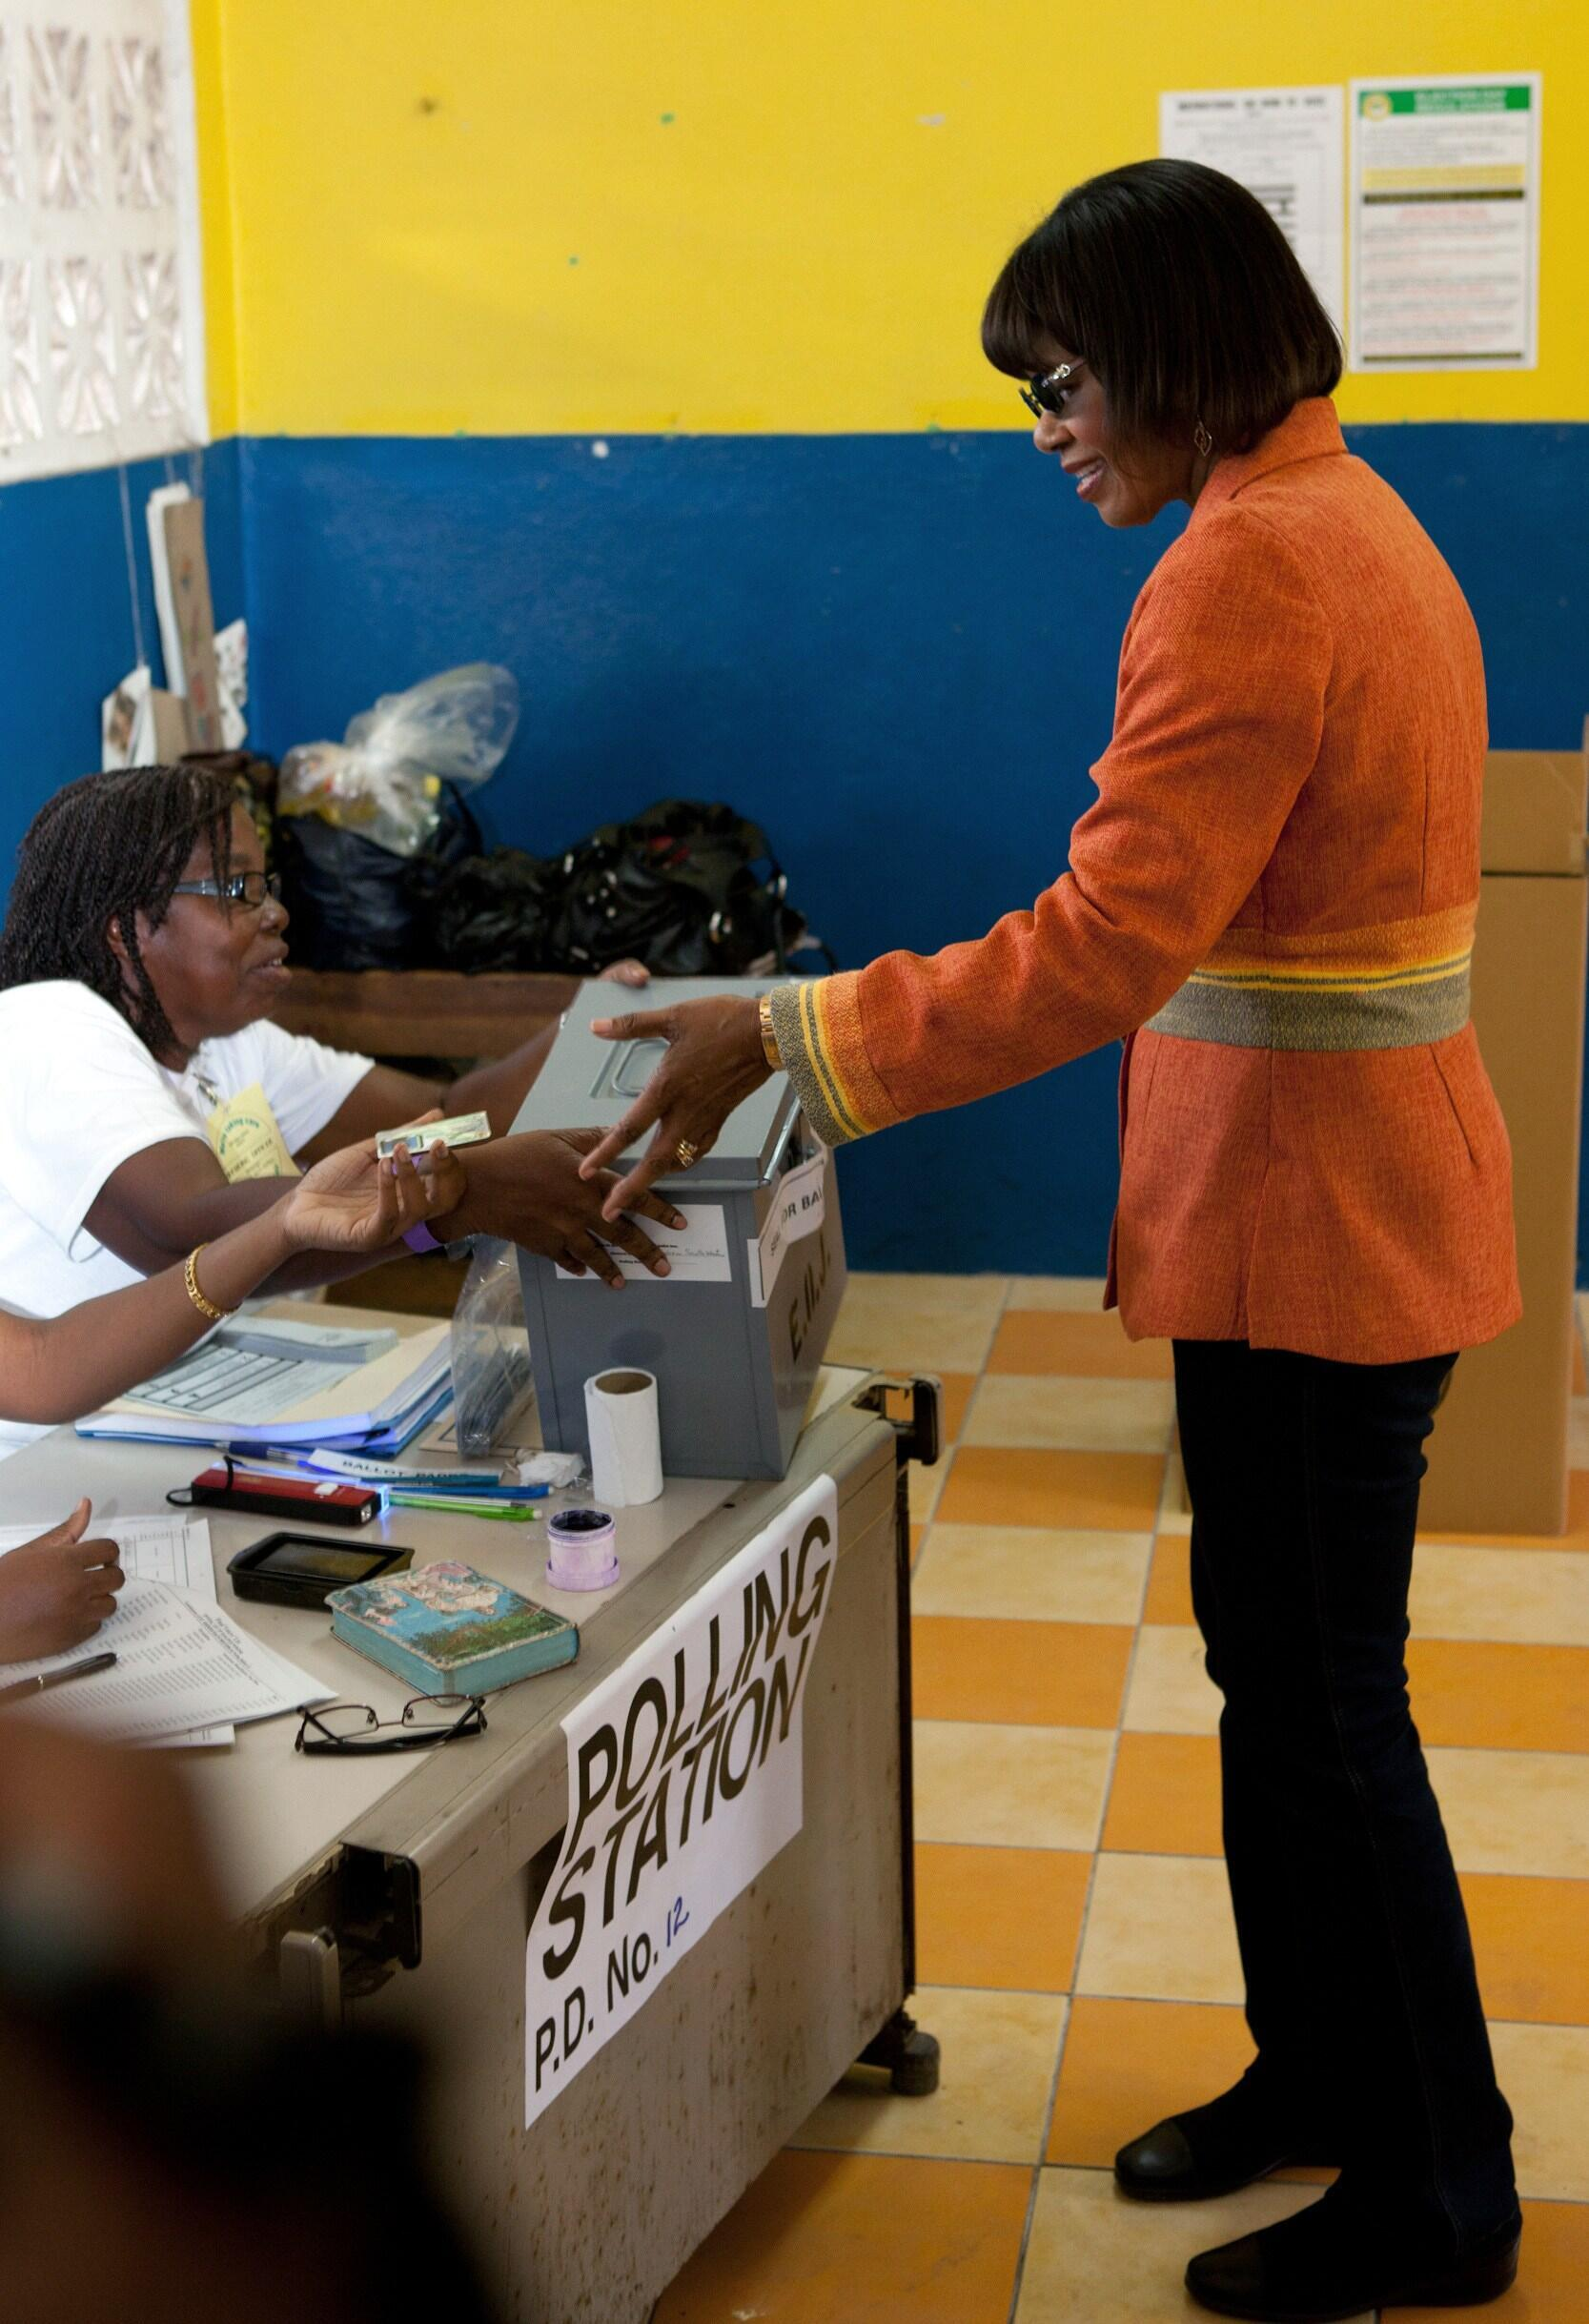 People's National Party leader Portia Simpson-Miller in a Kingston polling station